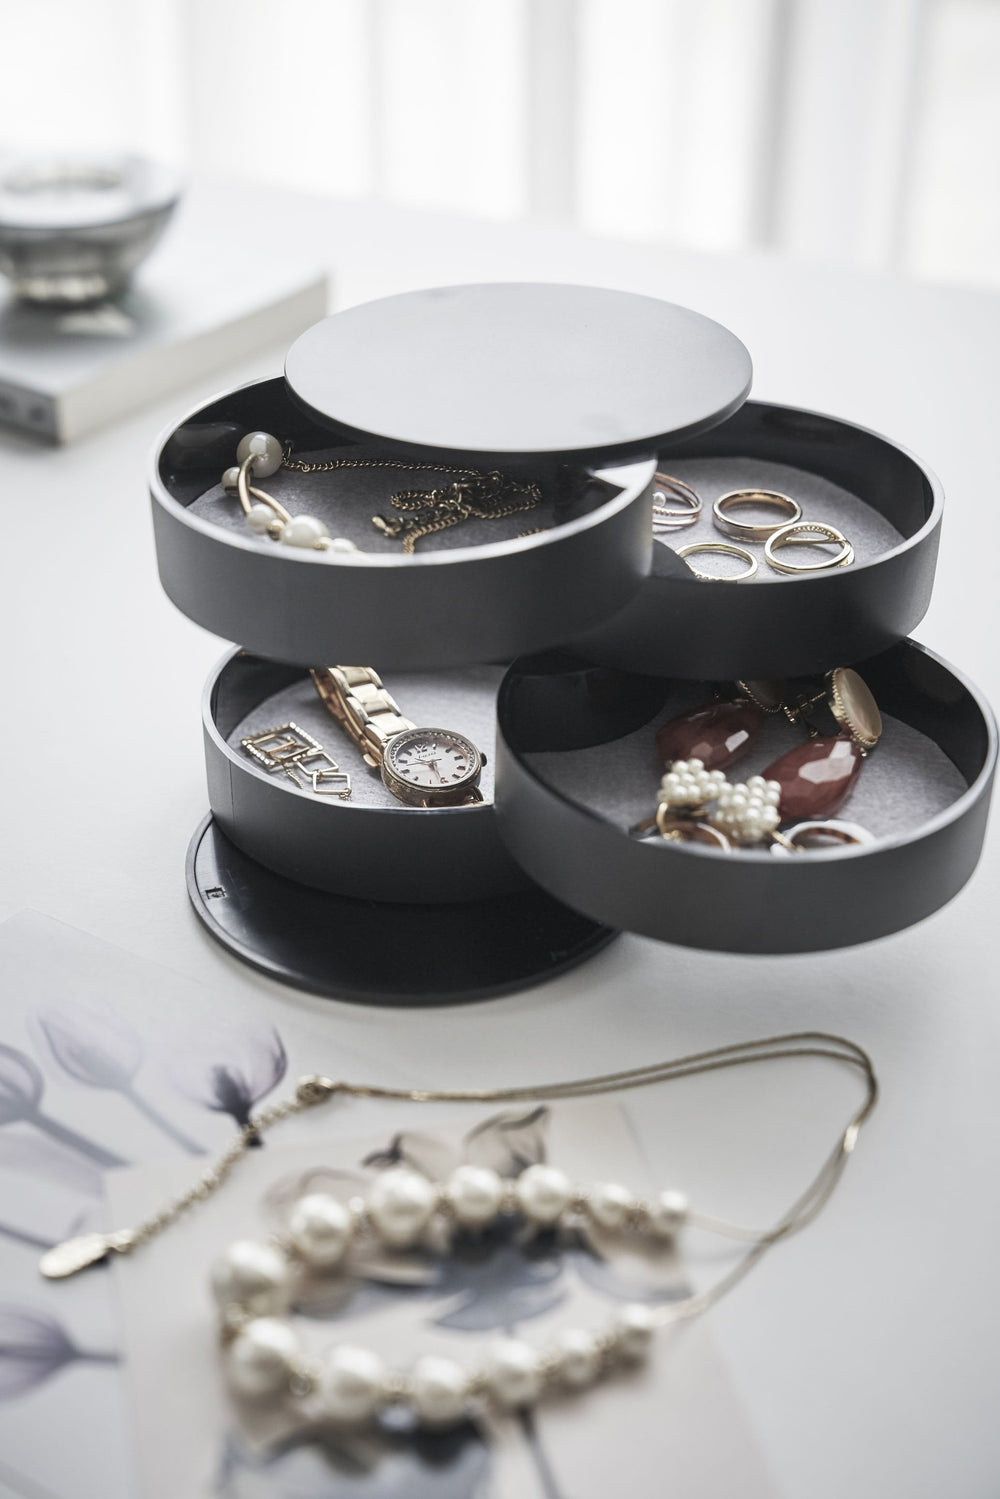 Full, up-close view of Yamazaki's 4-Tiered Accessory Tray on a desk with various jewelry pieces and accessories inside the various stacked round compartments. Assorted tabletop items appear as well, like a book, necklace, picture frame, and candle.